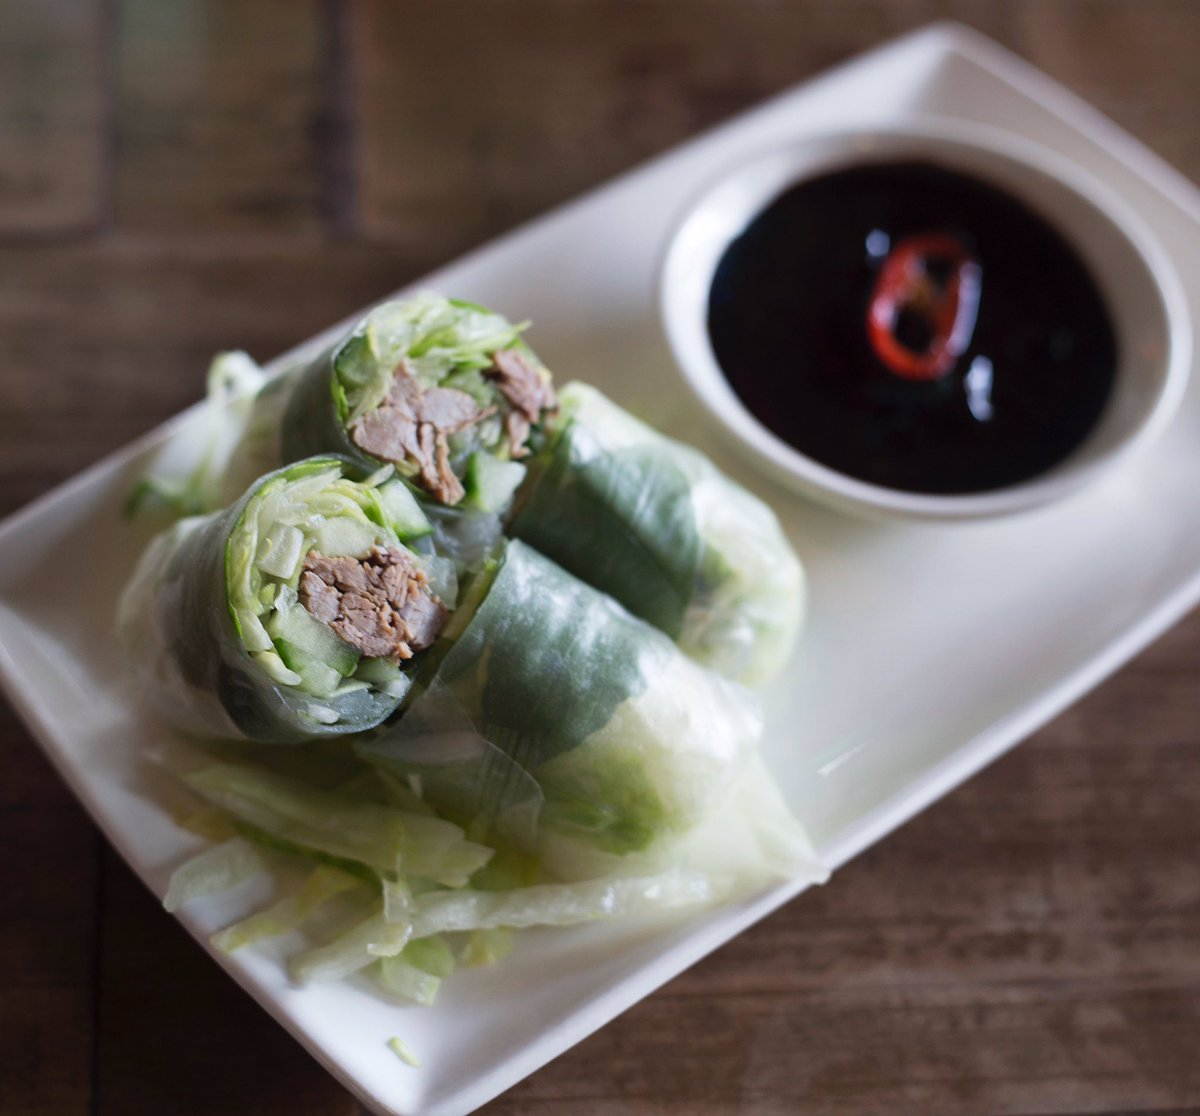 Try our new beef brisket summer rolls w/ Thai basil & cucumber, served w/ #glutenfree hoisin #delicious #summerofPho https://t.co/RRXCj908gO